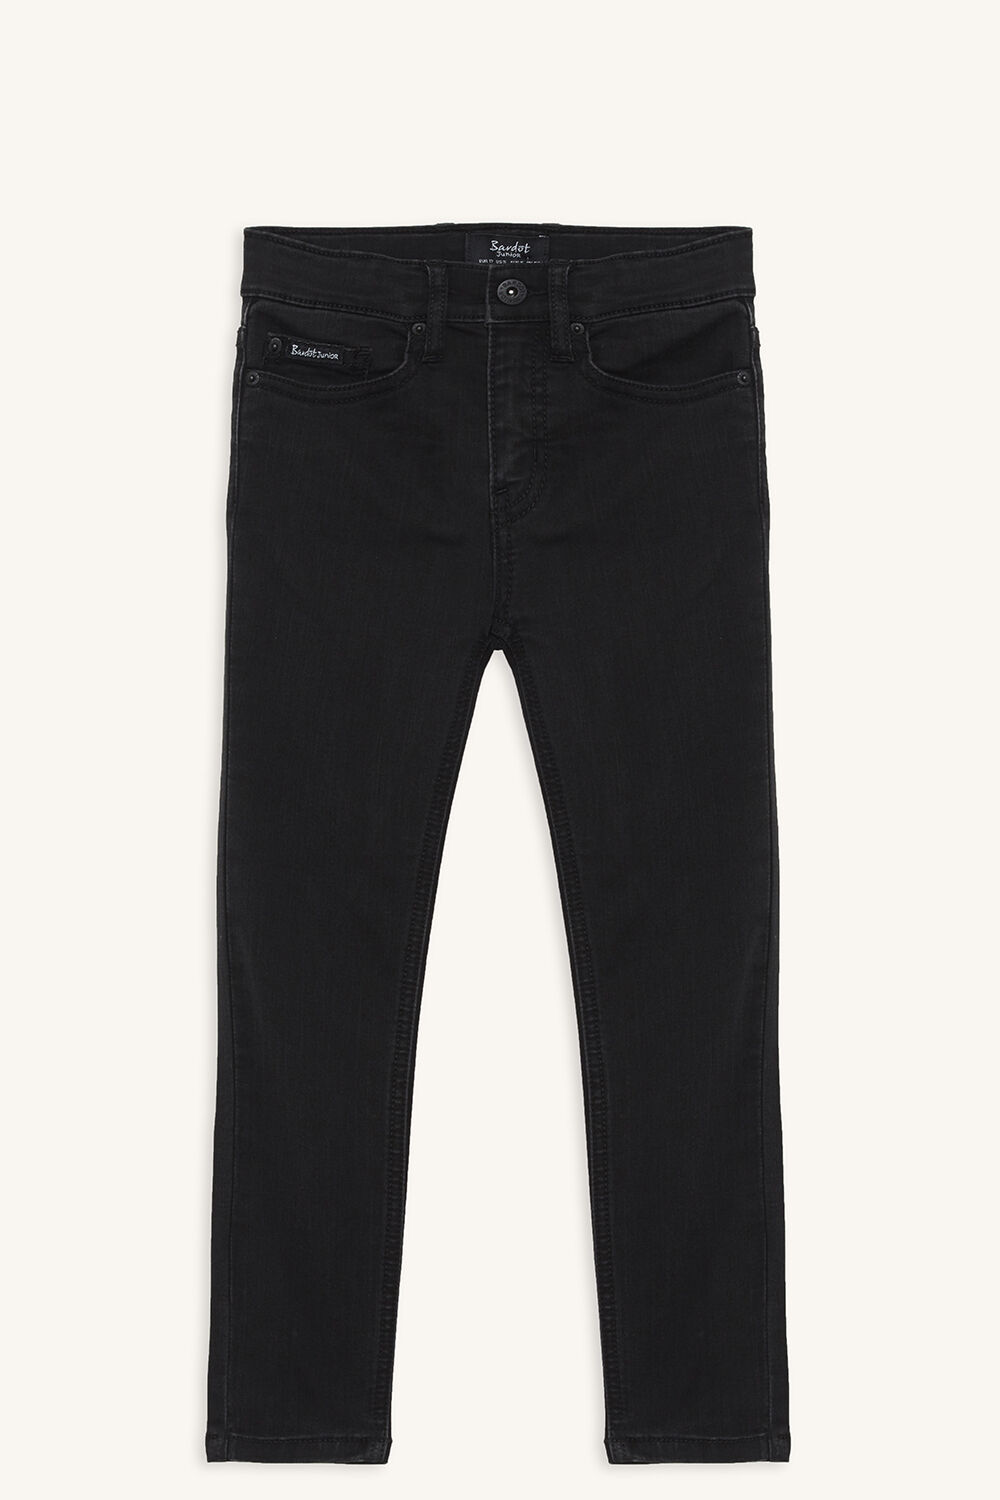 AXL TRASH SKINNY JEAN in colour JET BLACK